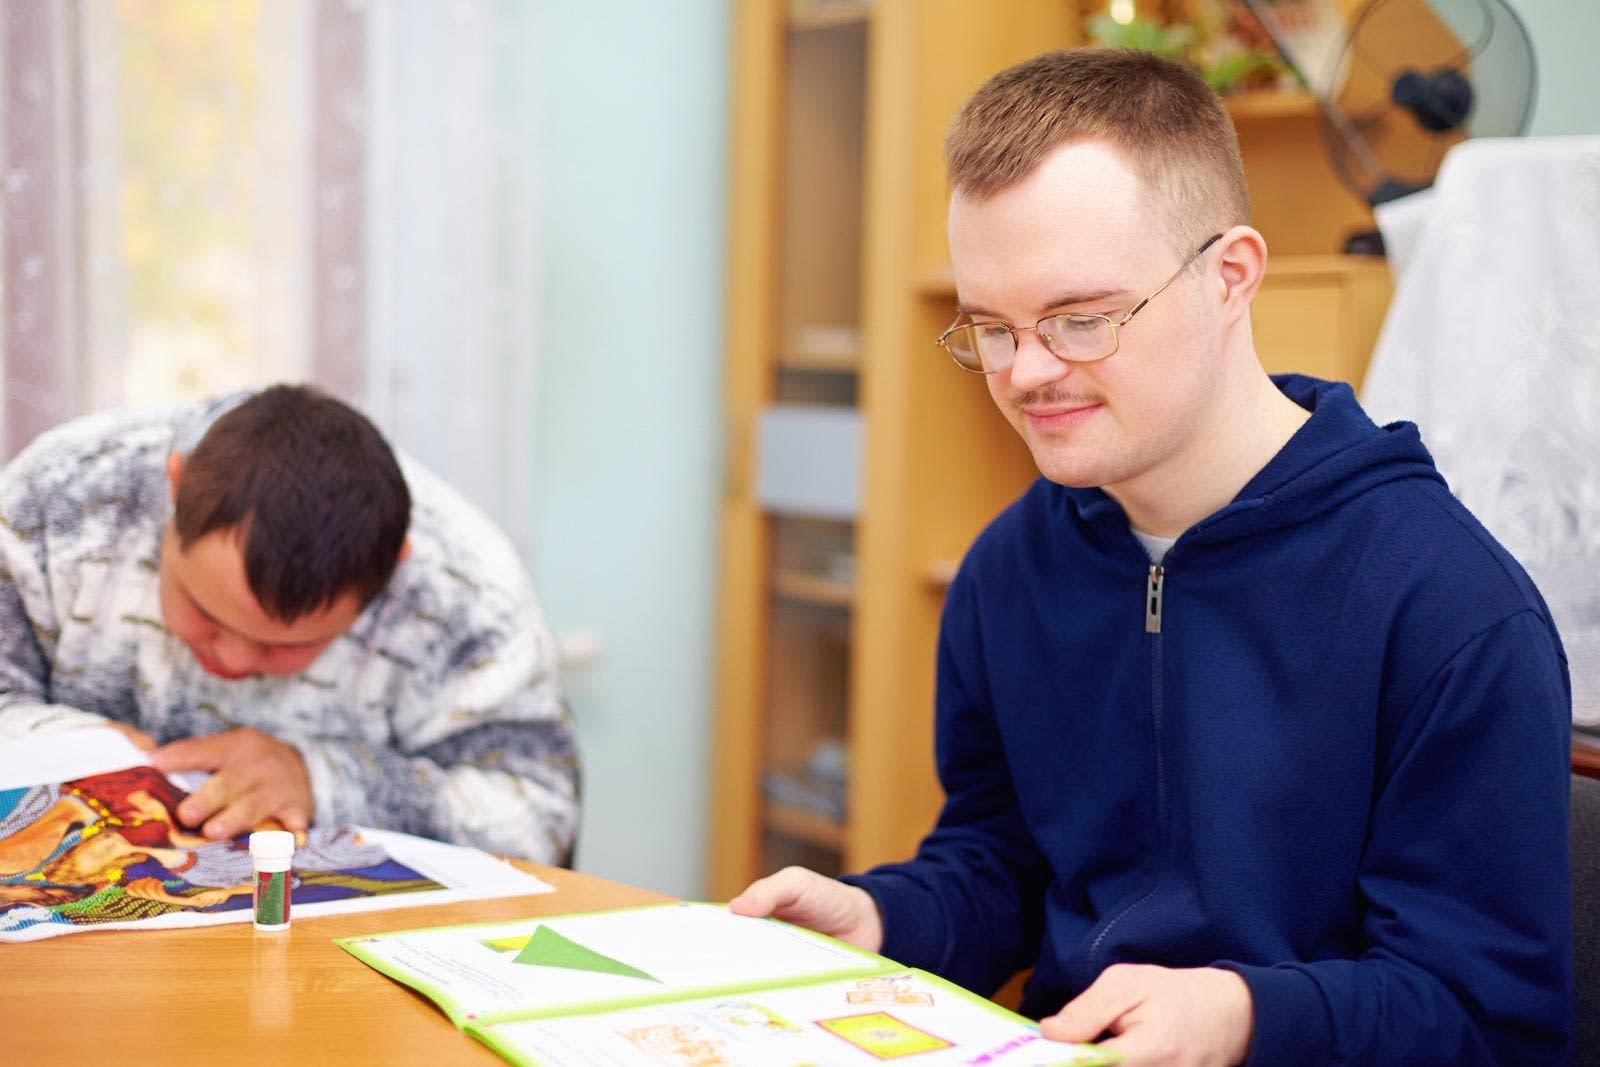 people with learning disability Learning disability is a classification that includes several areas of functioning in which a person has difficulty learning in a typical manner, usually caused by an unknown factor or factors given the difficulty learning in a typical manner, this does not exclude the ability to learn in a different manner therefore, some people can be more accurately described as having a learning.